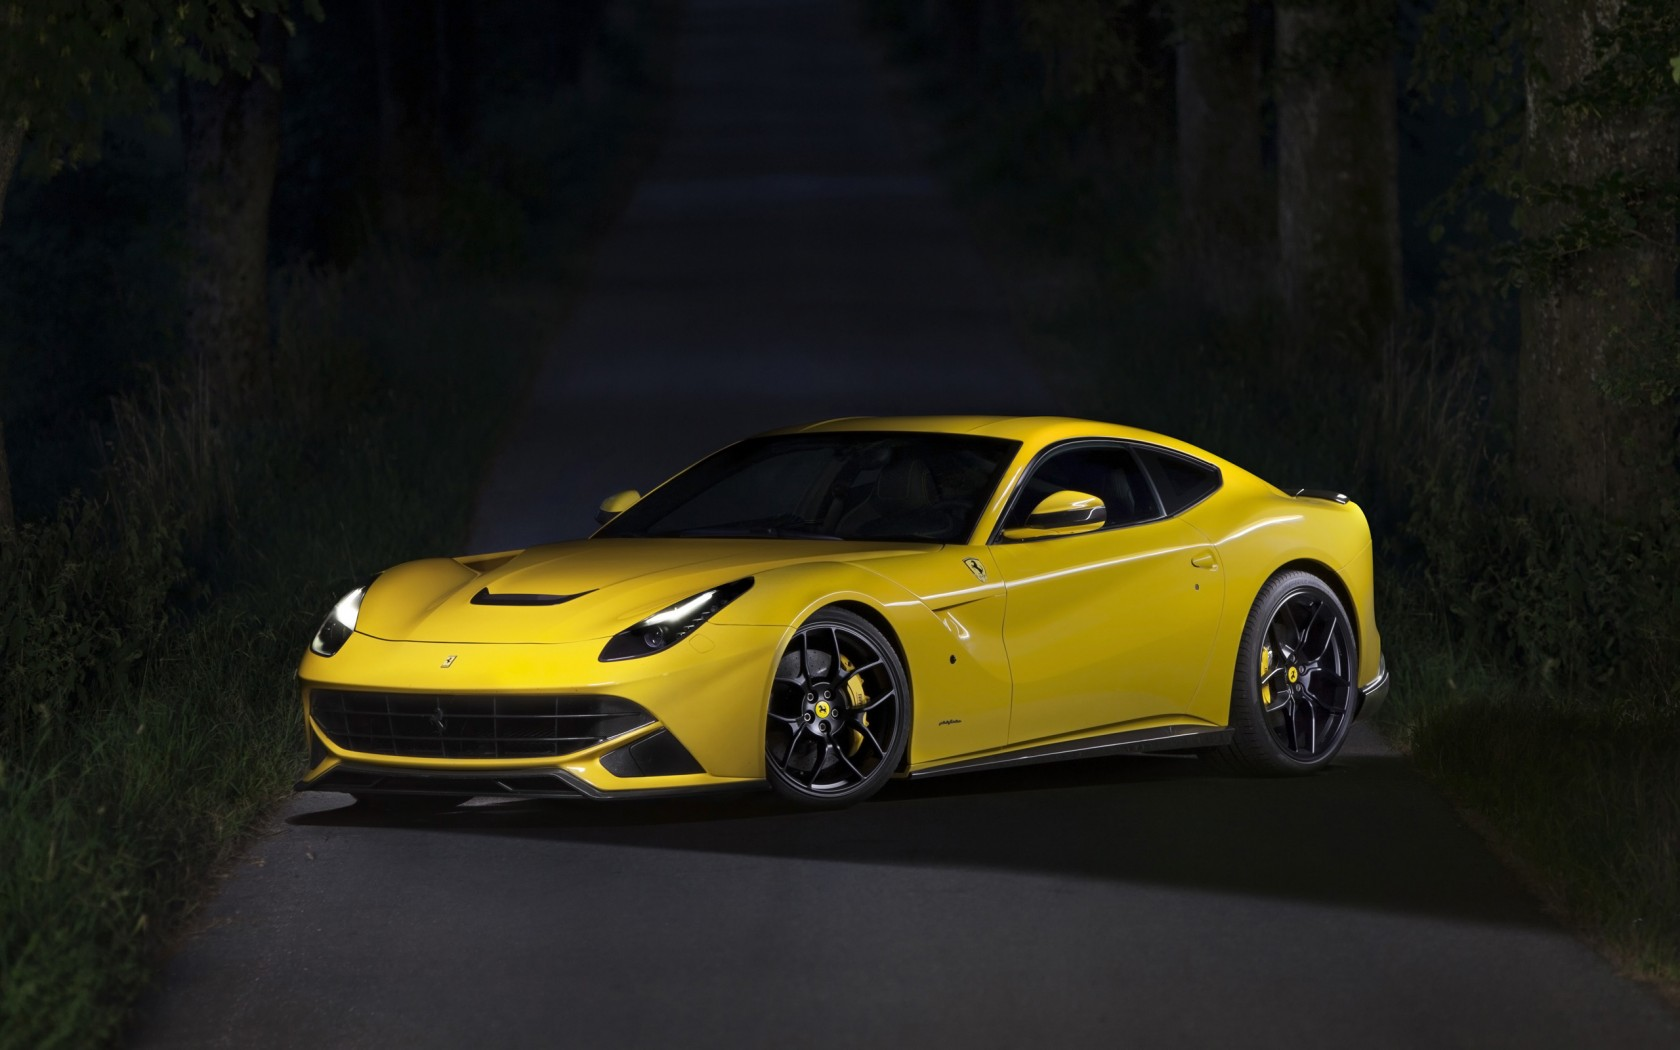 Hd Iphone X Wallpapers 4k Novitec Rosso Ferrari F12berlinetta Wallpaper Hd Car